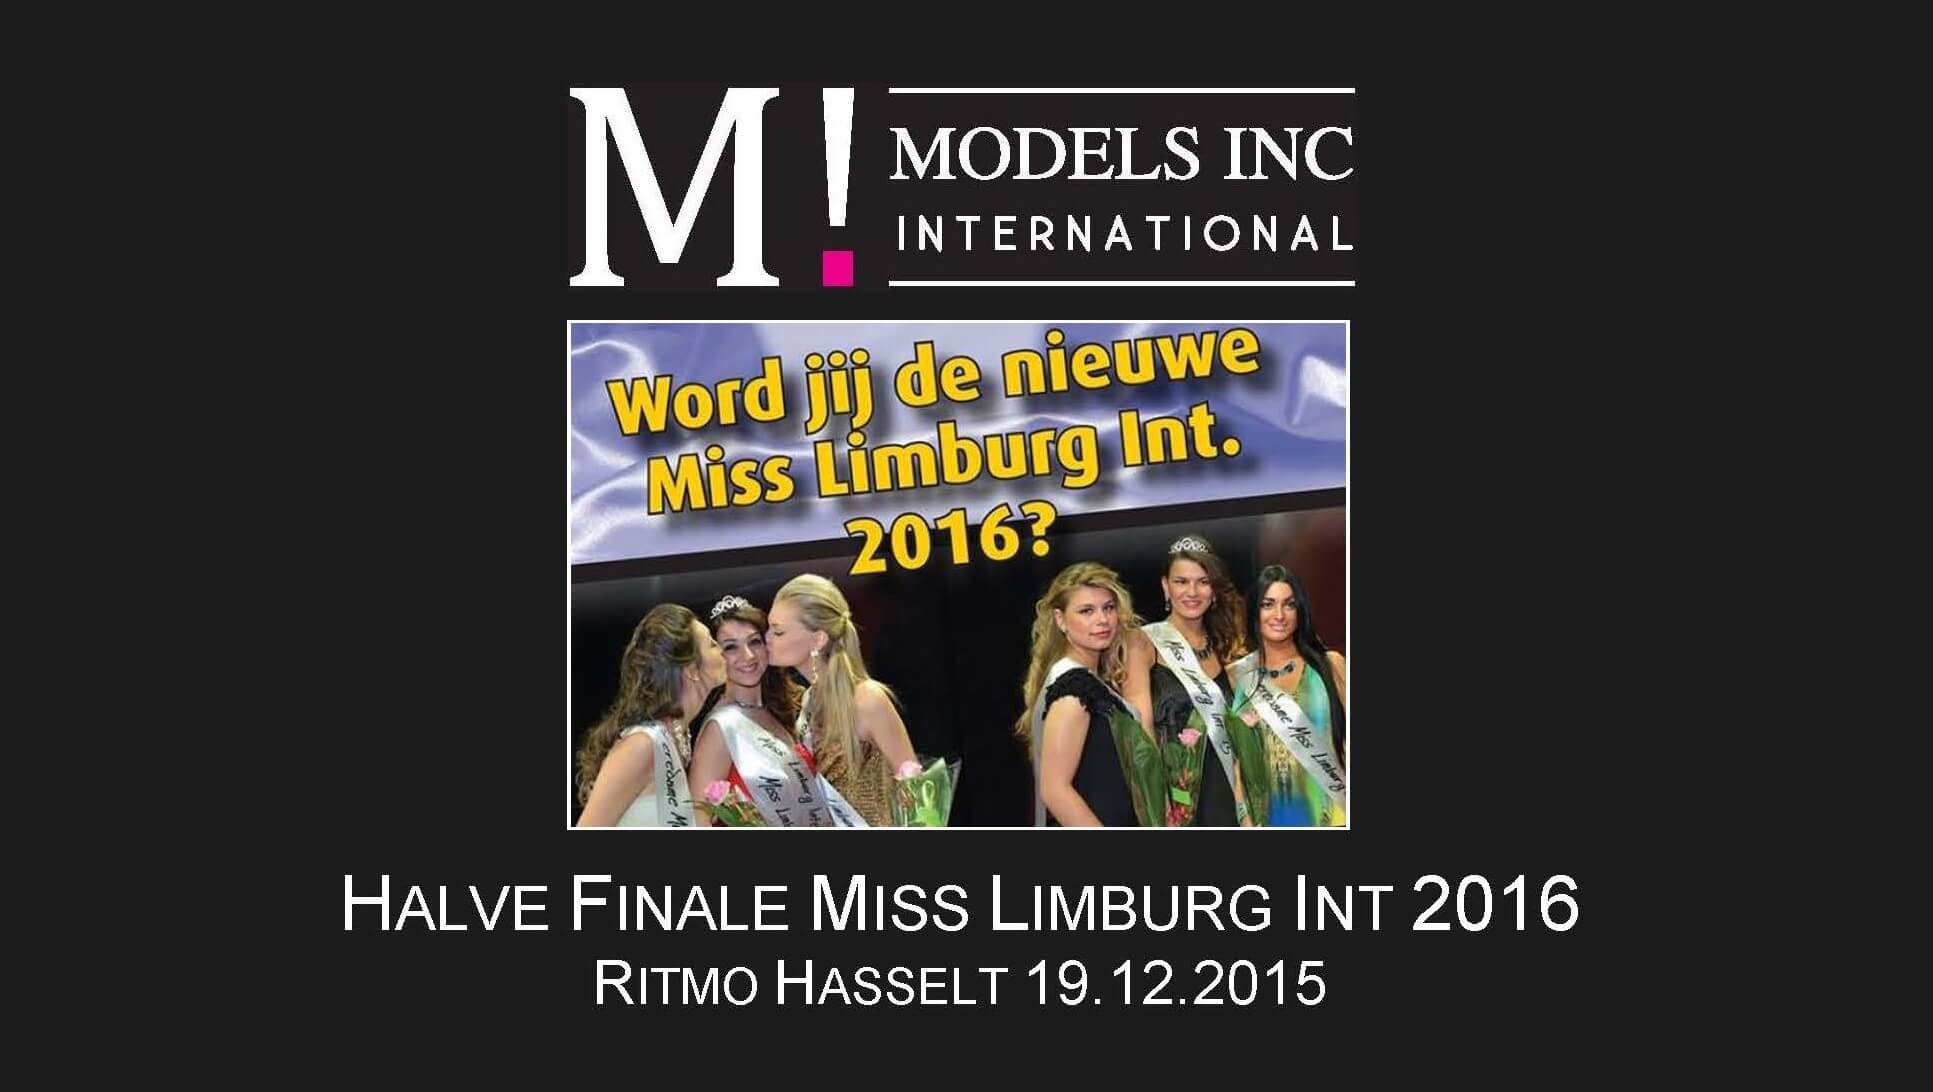 Halve finale Miss Limburg International 2016